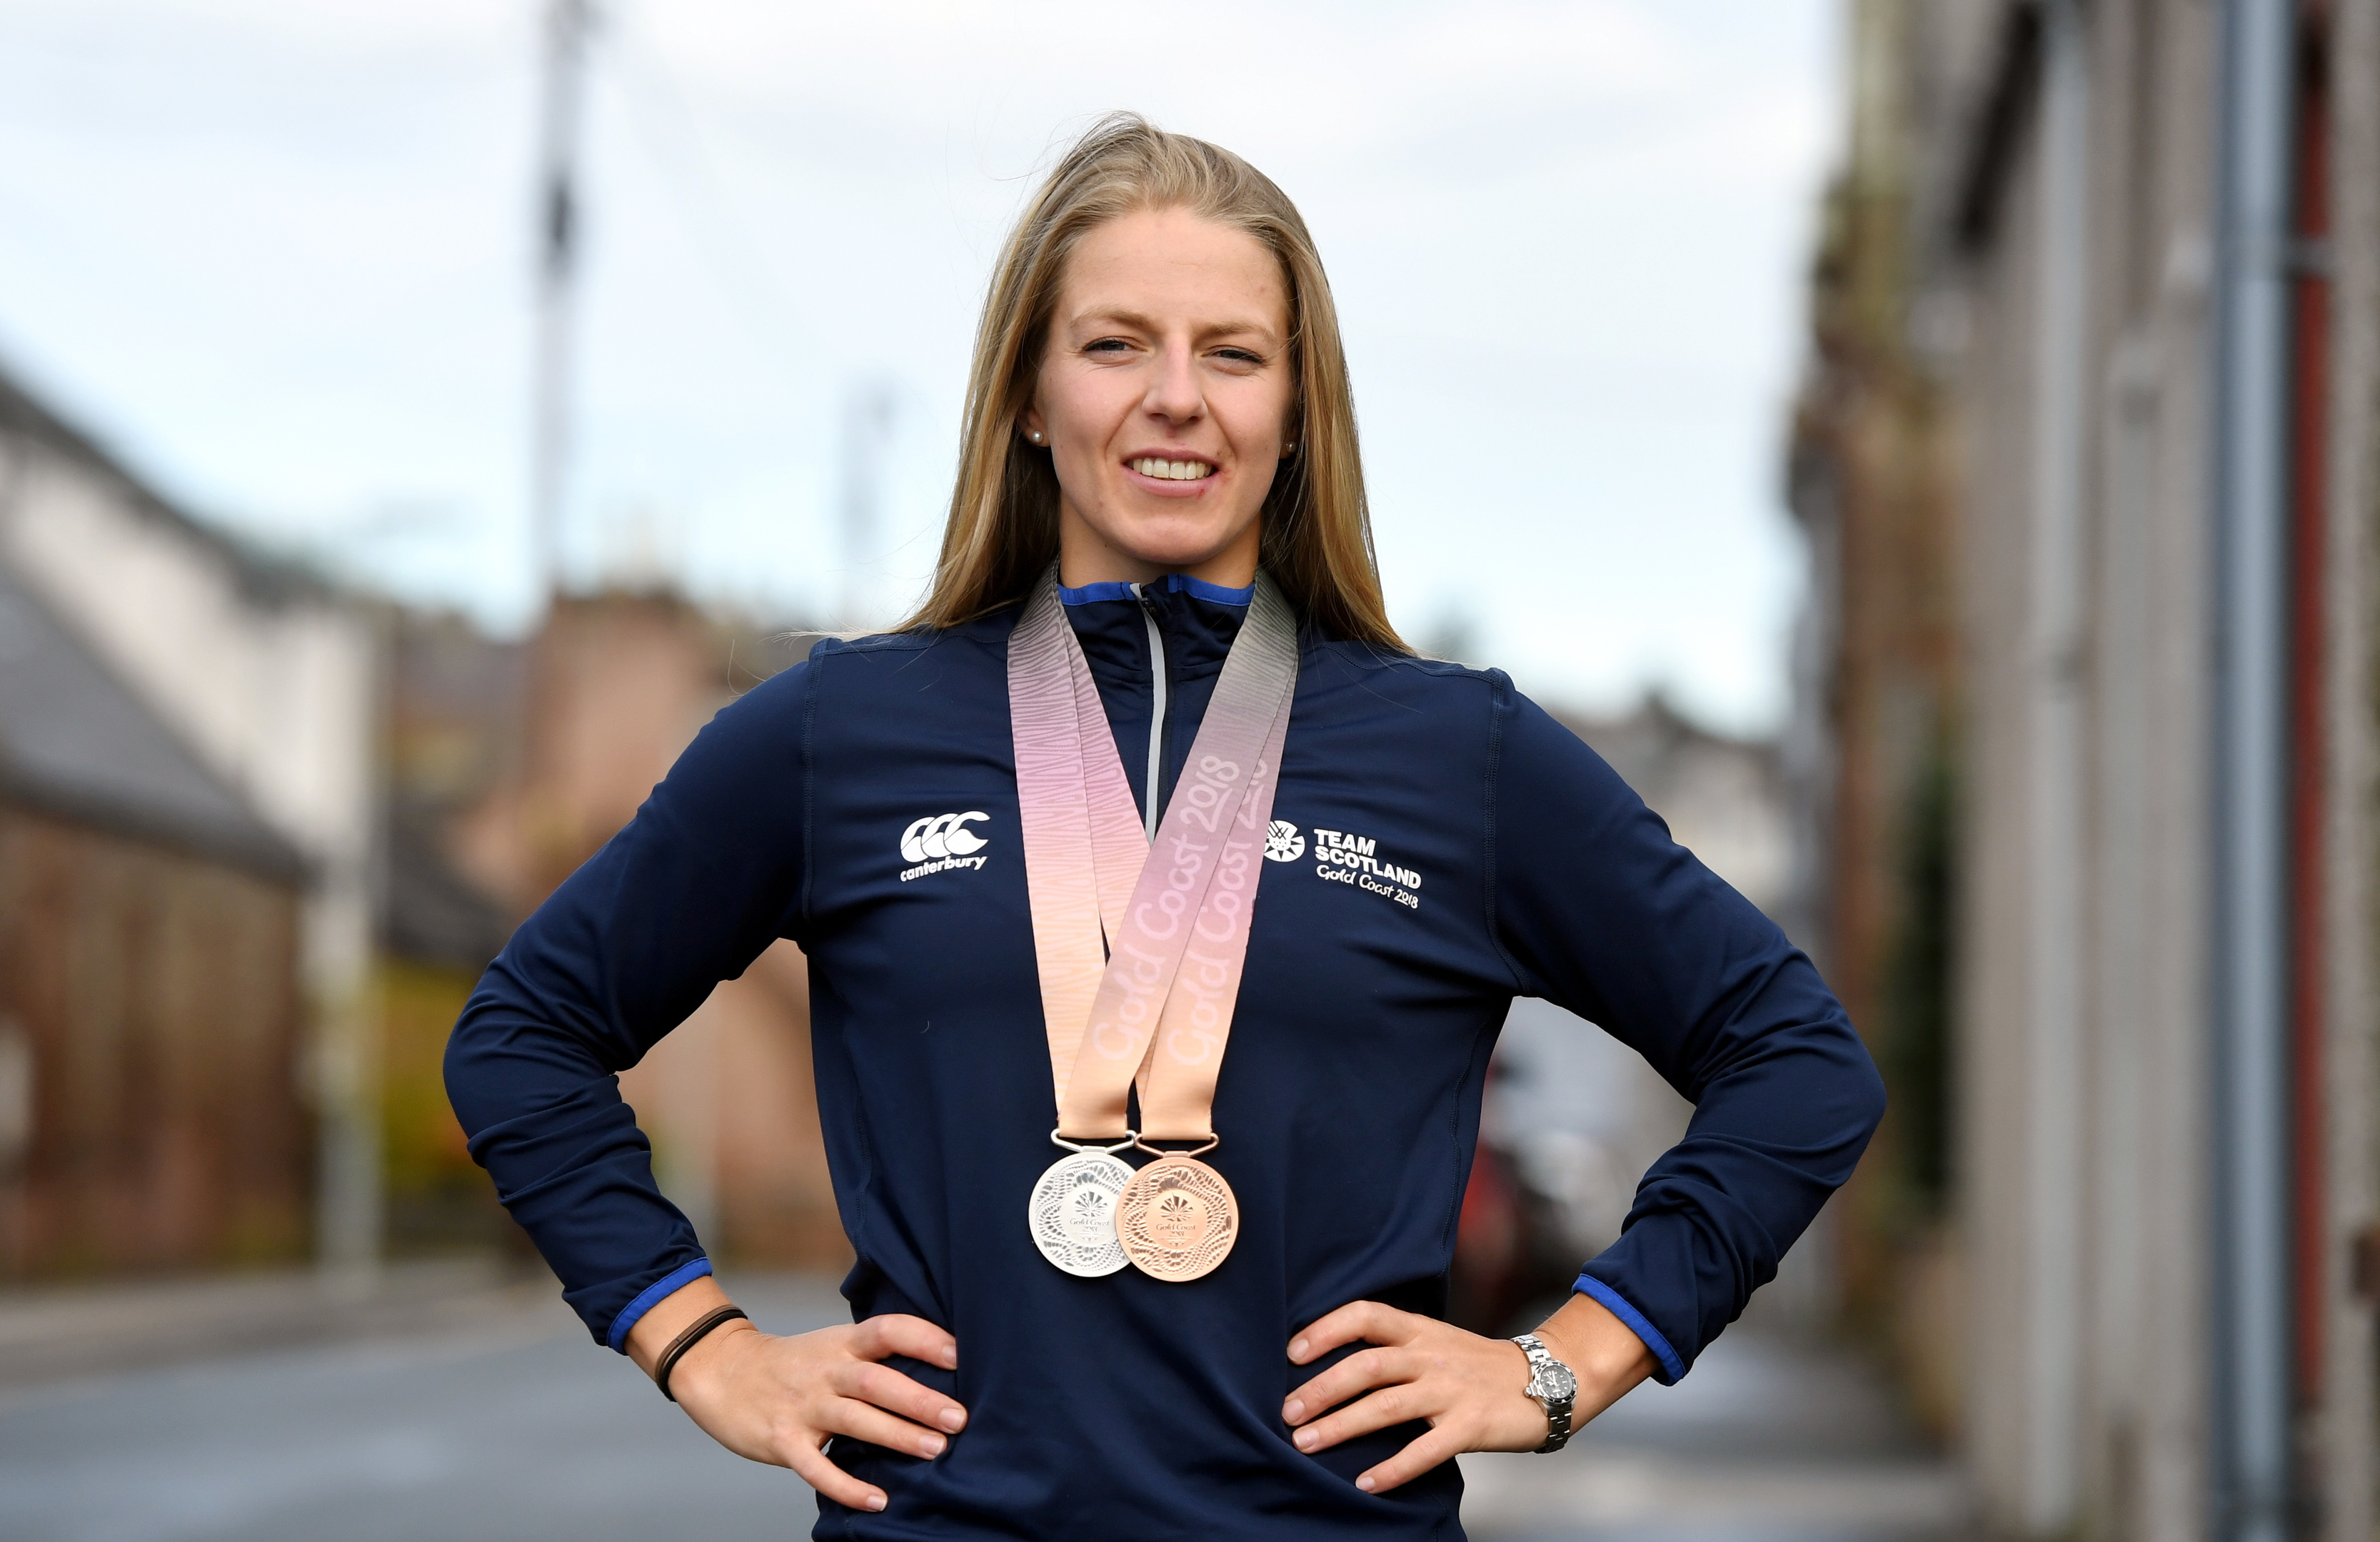 Evans is a double medallist from the Commonwealth Games in 2018.